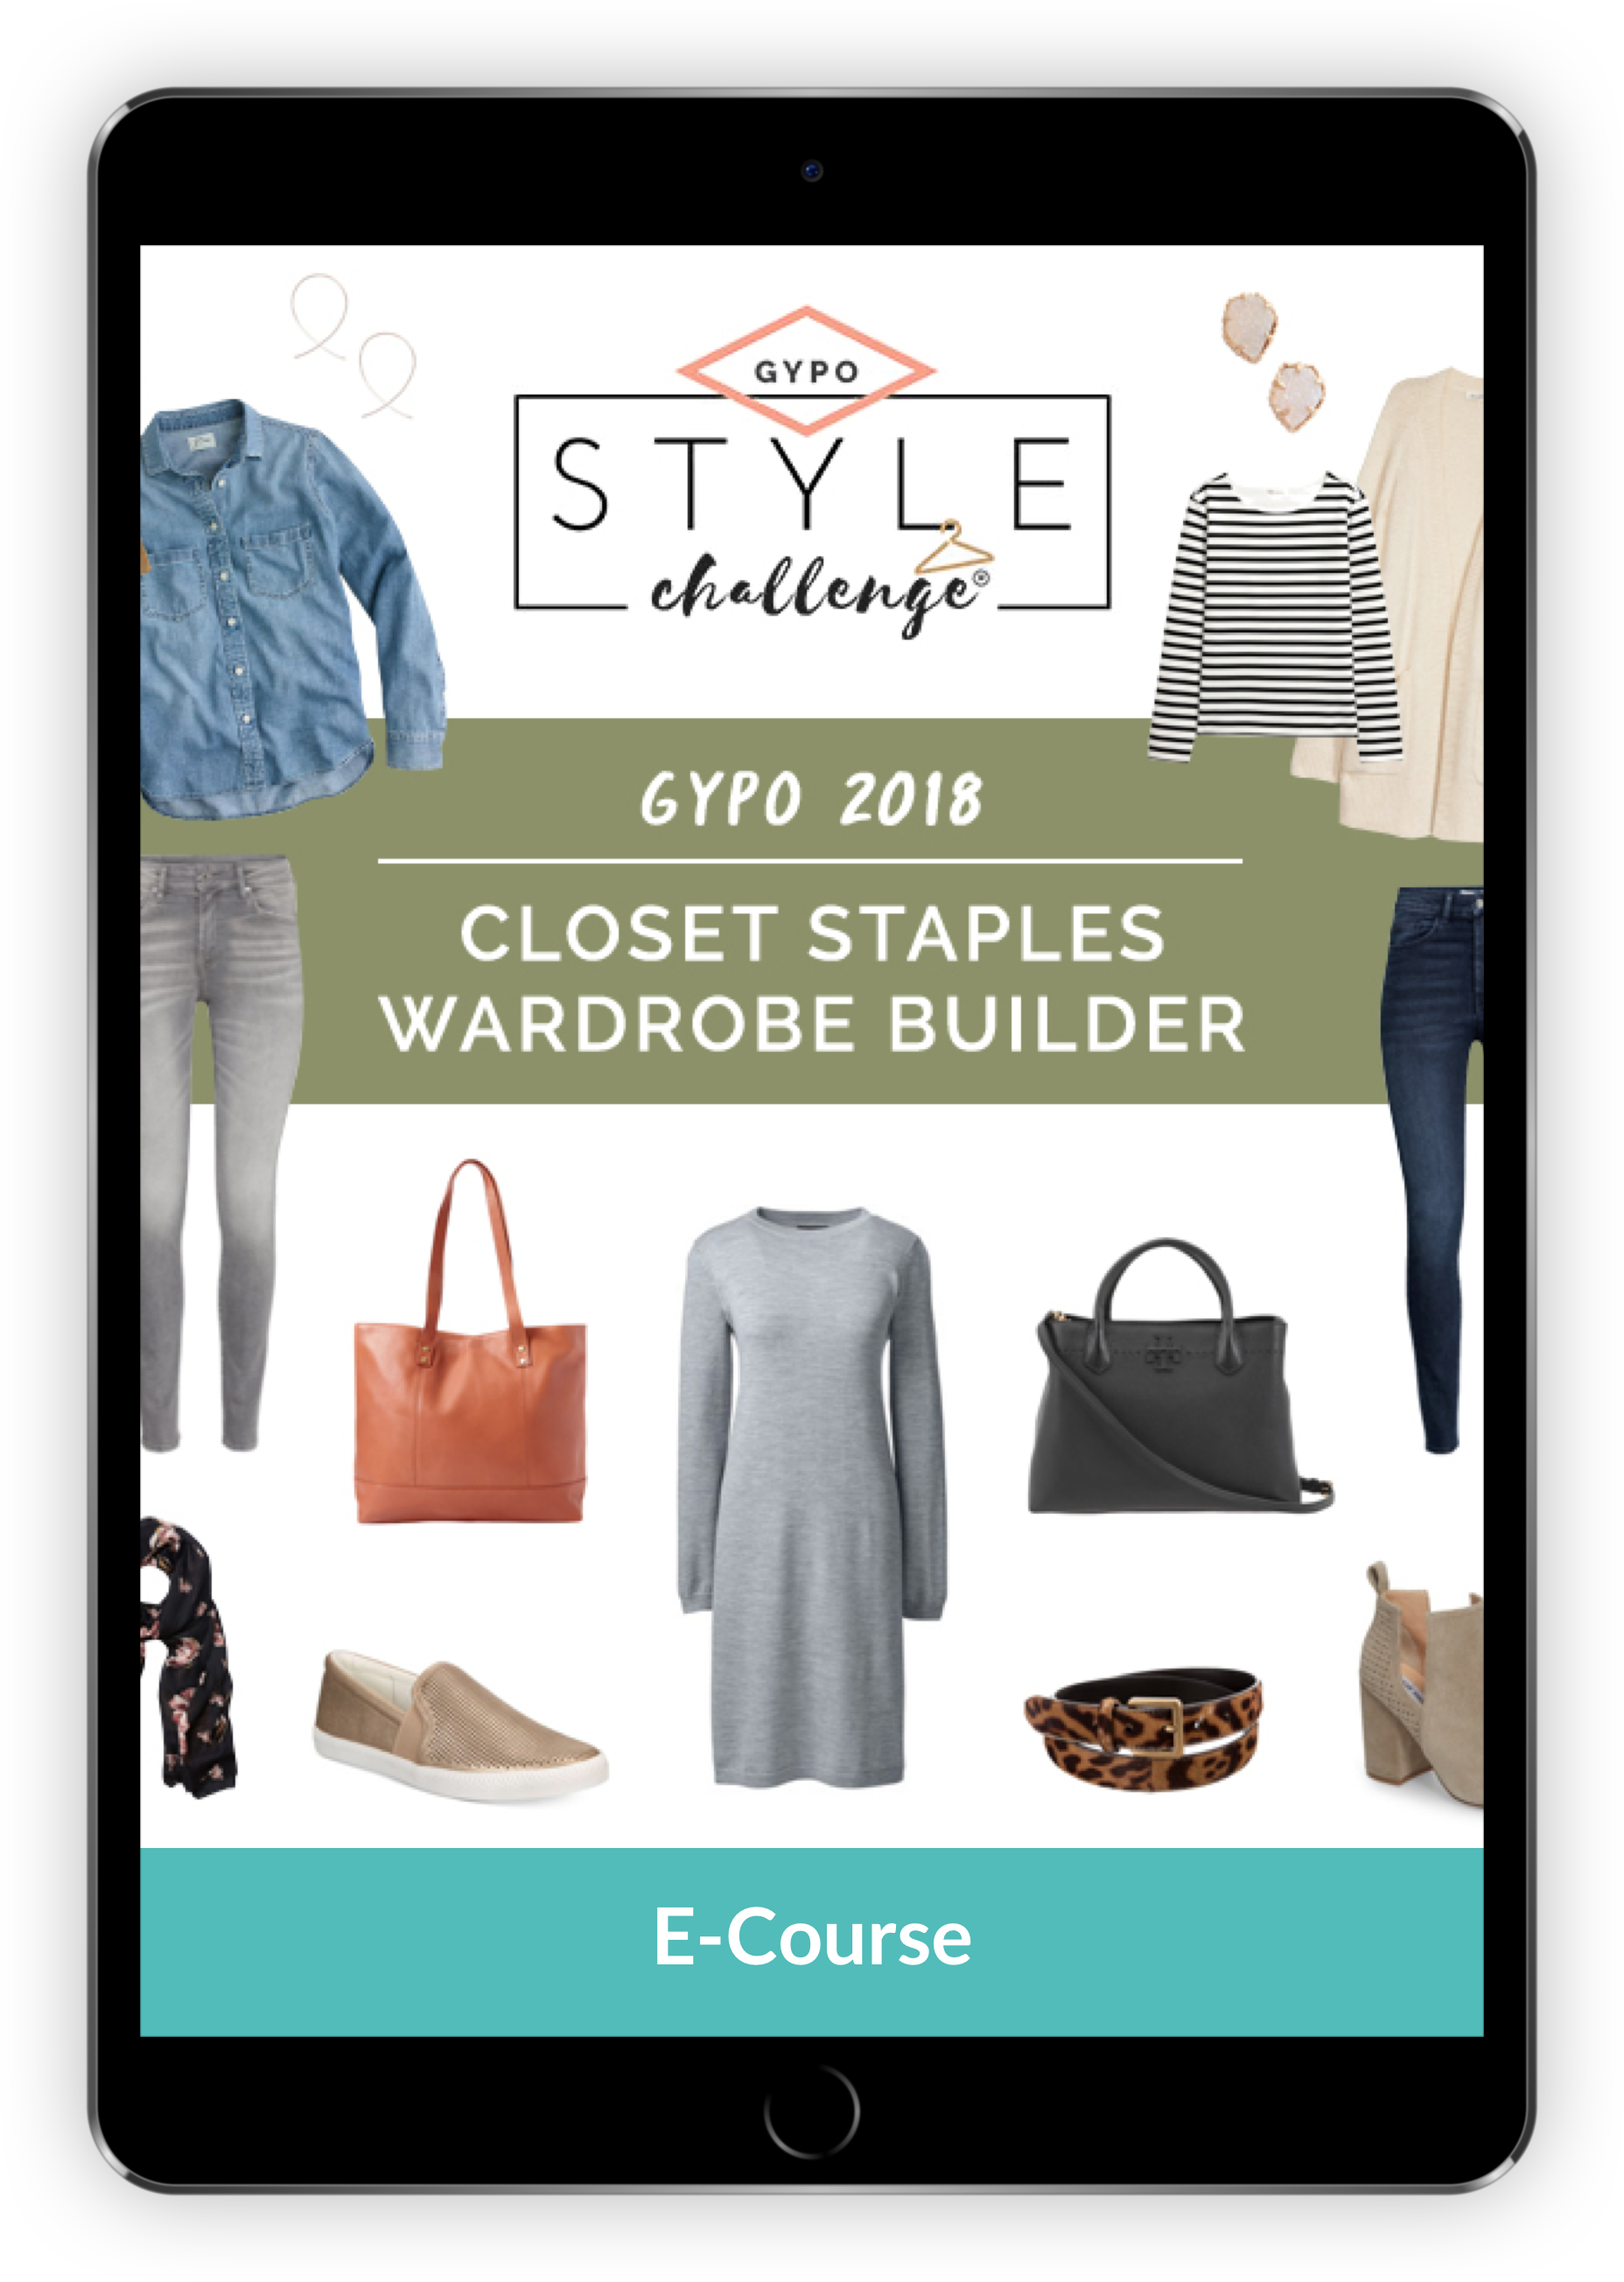 ClosetStaples Mockup - Copy.png